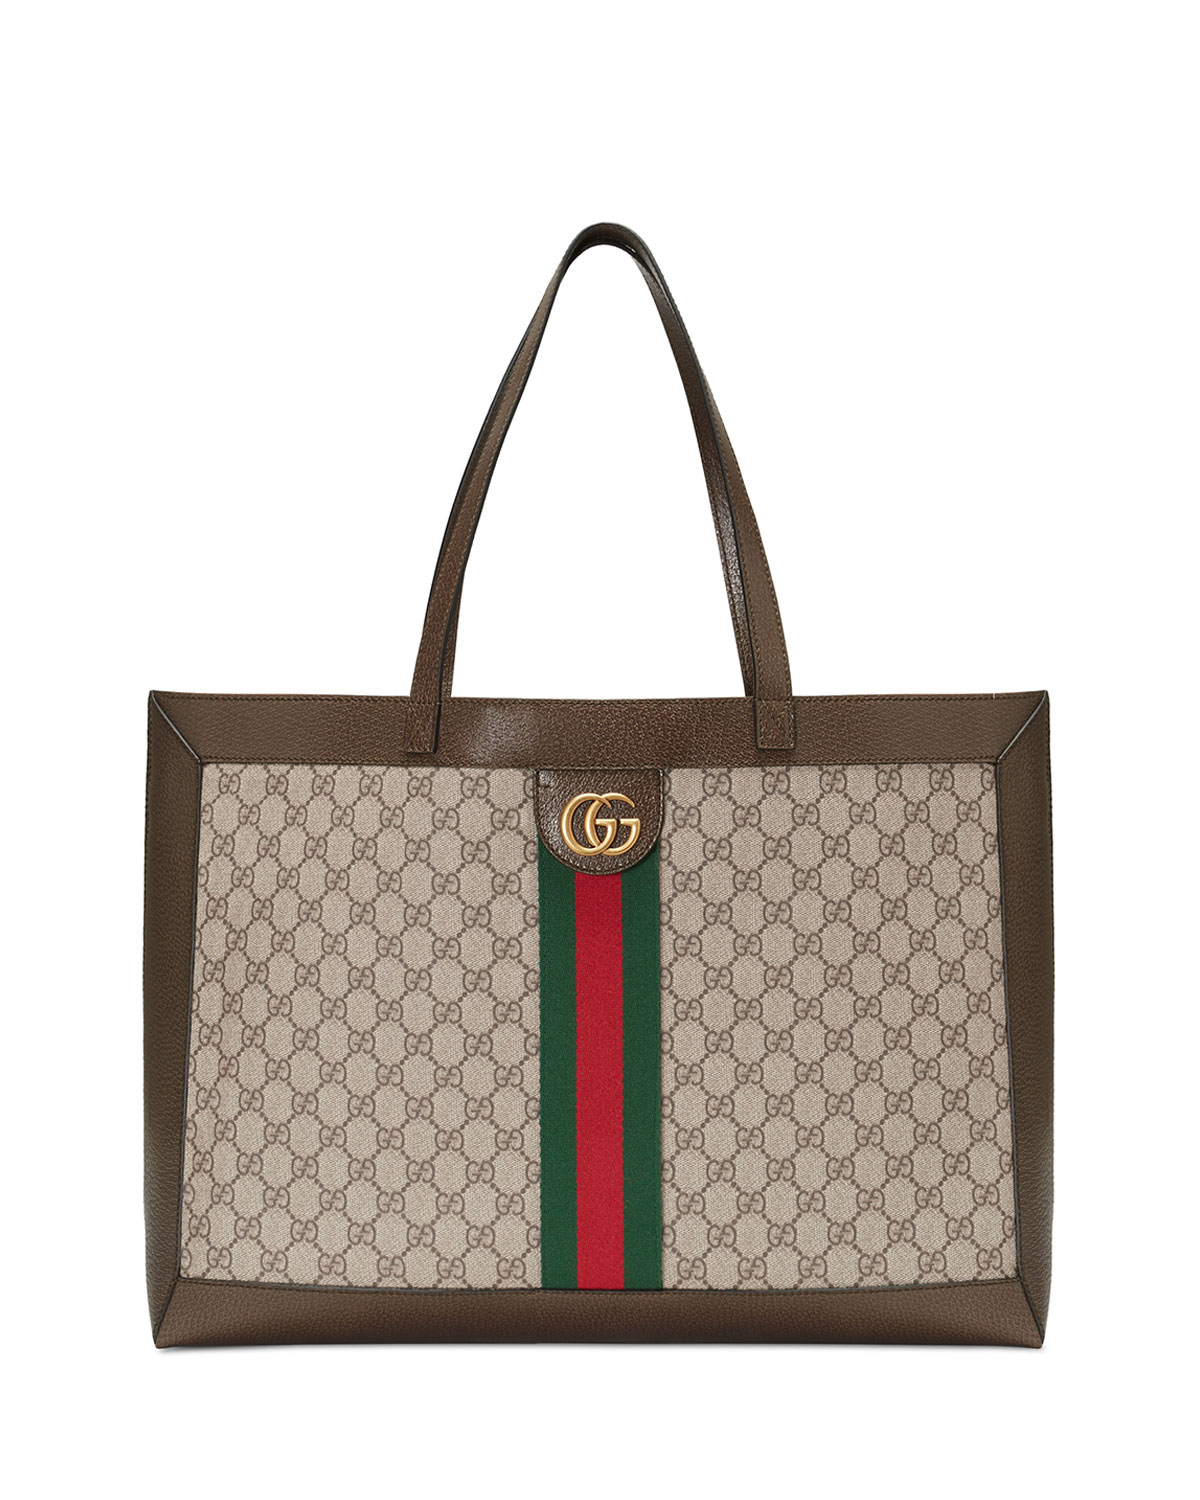 fe5ab018c22 Gucci Ophidia Soft Gg Supreme Canvas Tote Bag With Web In Beige Ebony  New  Acero